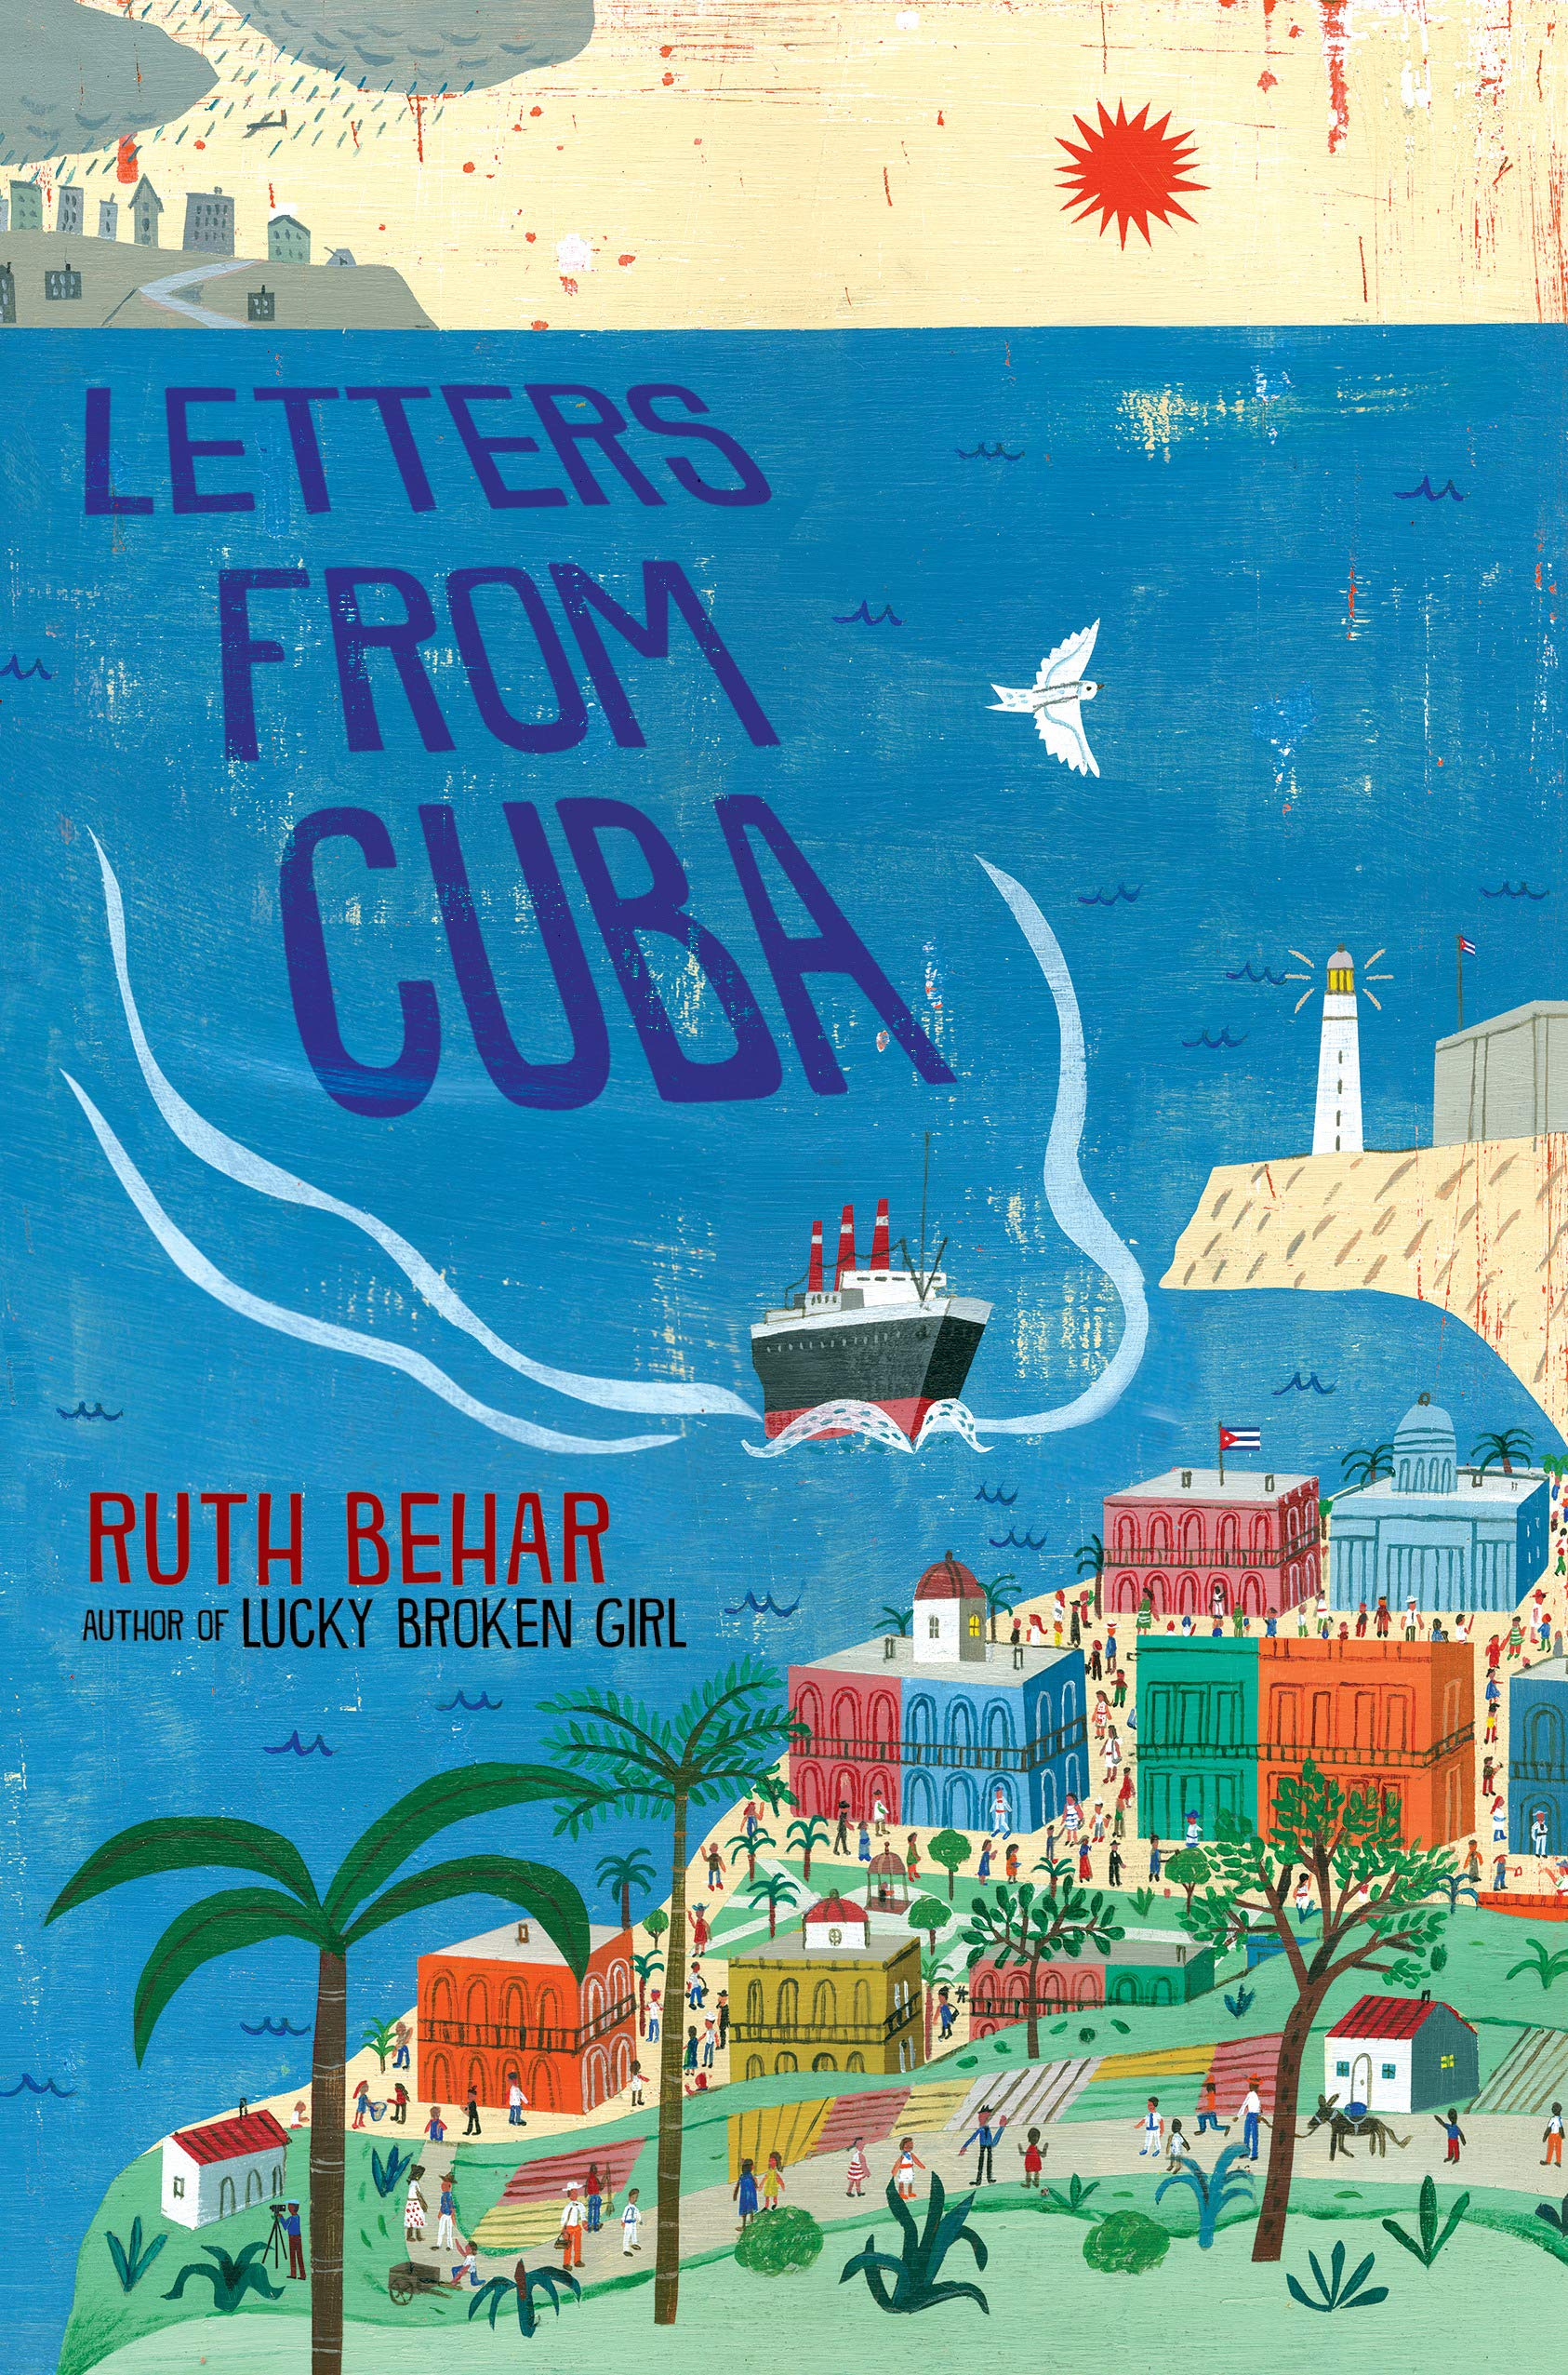 Letters From Cuba by Ruth Behar